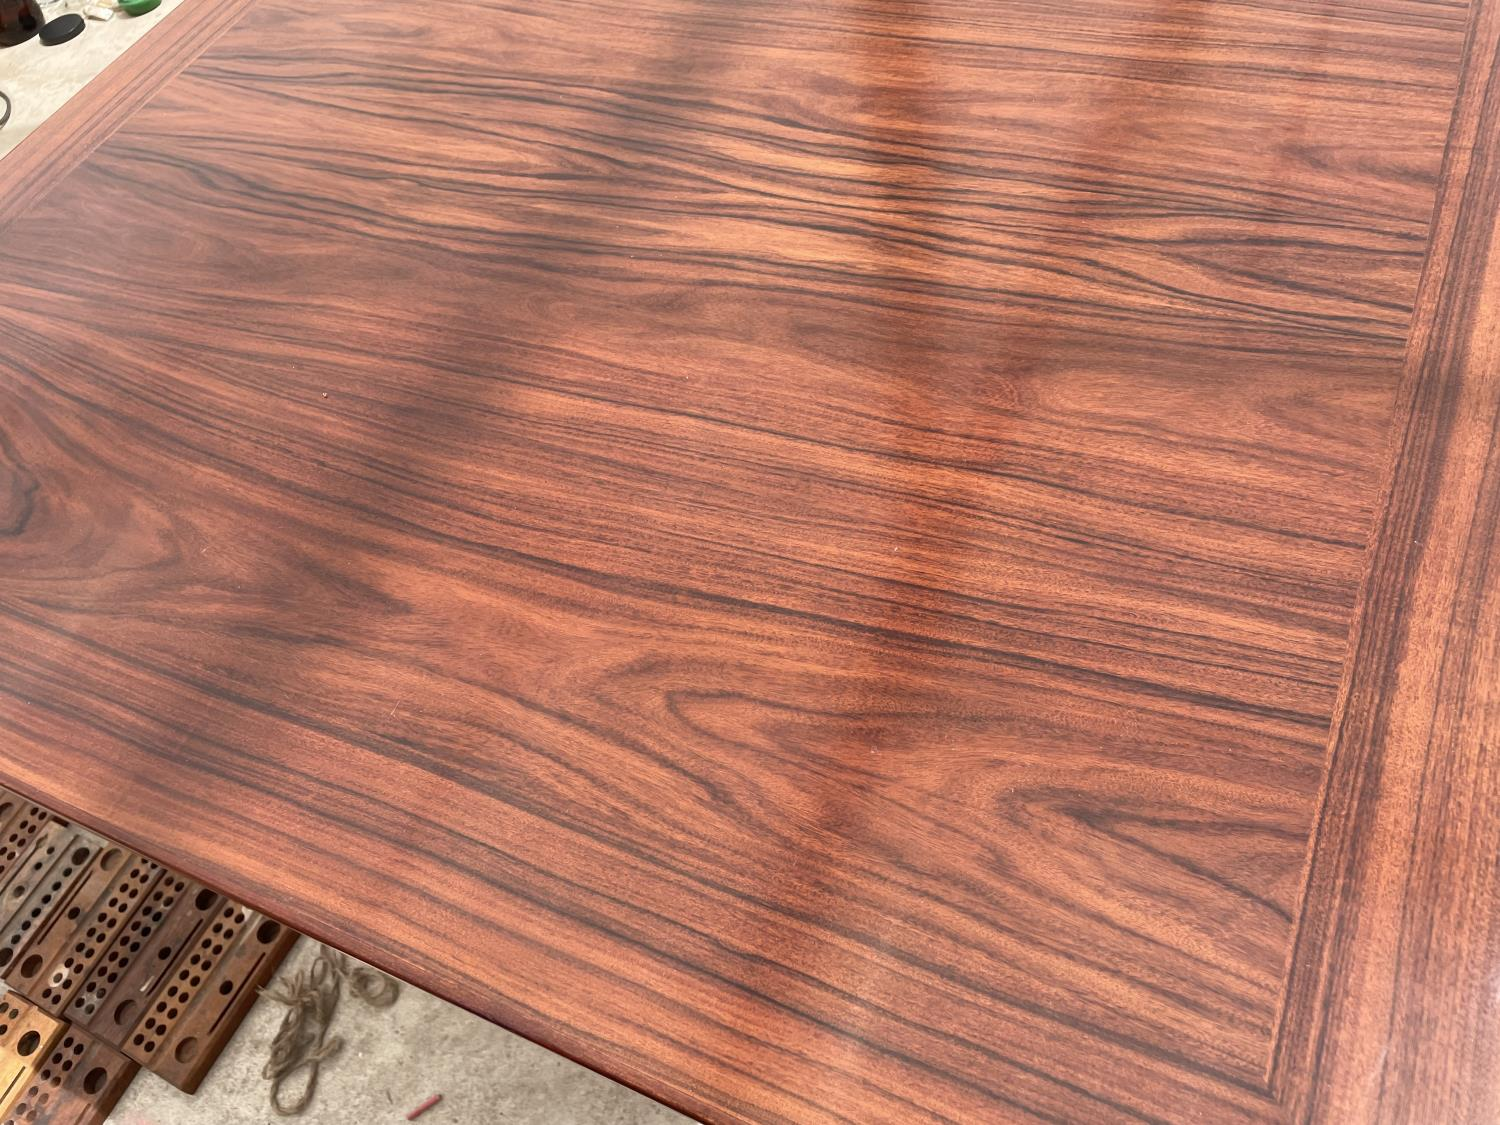 A RETRO EXTENDING HARDWOOD DINING TABLE WITH TWO EXTRA LEAVES - Image 2 of 6